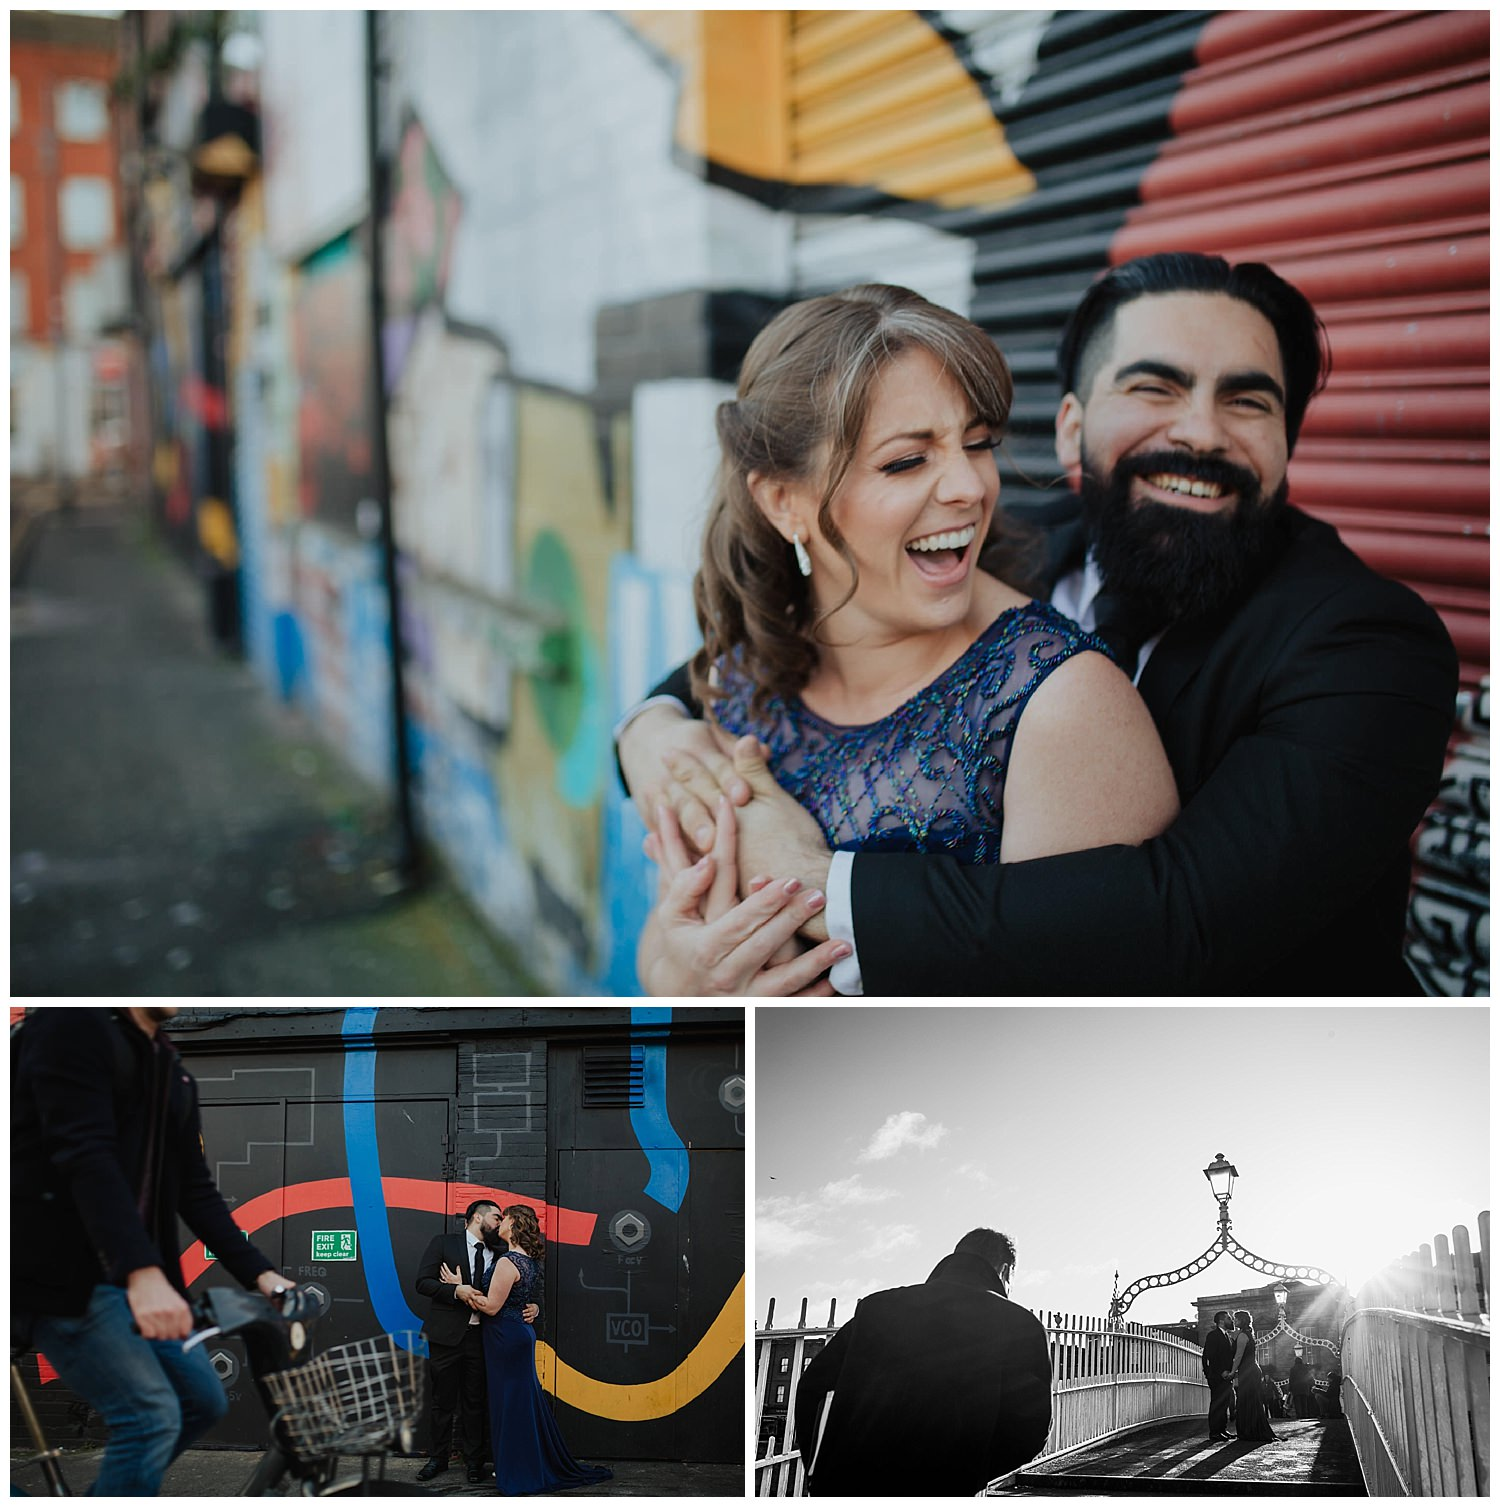 american_coupld_elopement_ireland_wedding_photographer_07.jpg